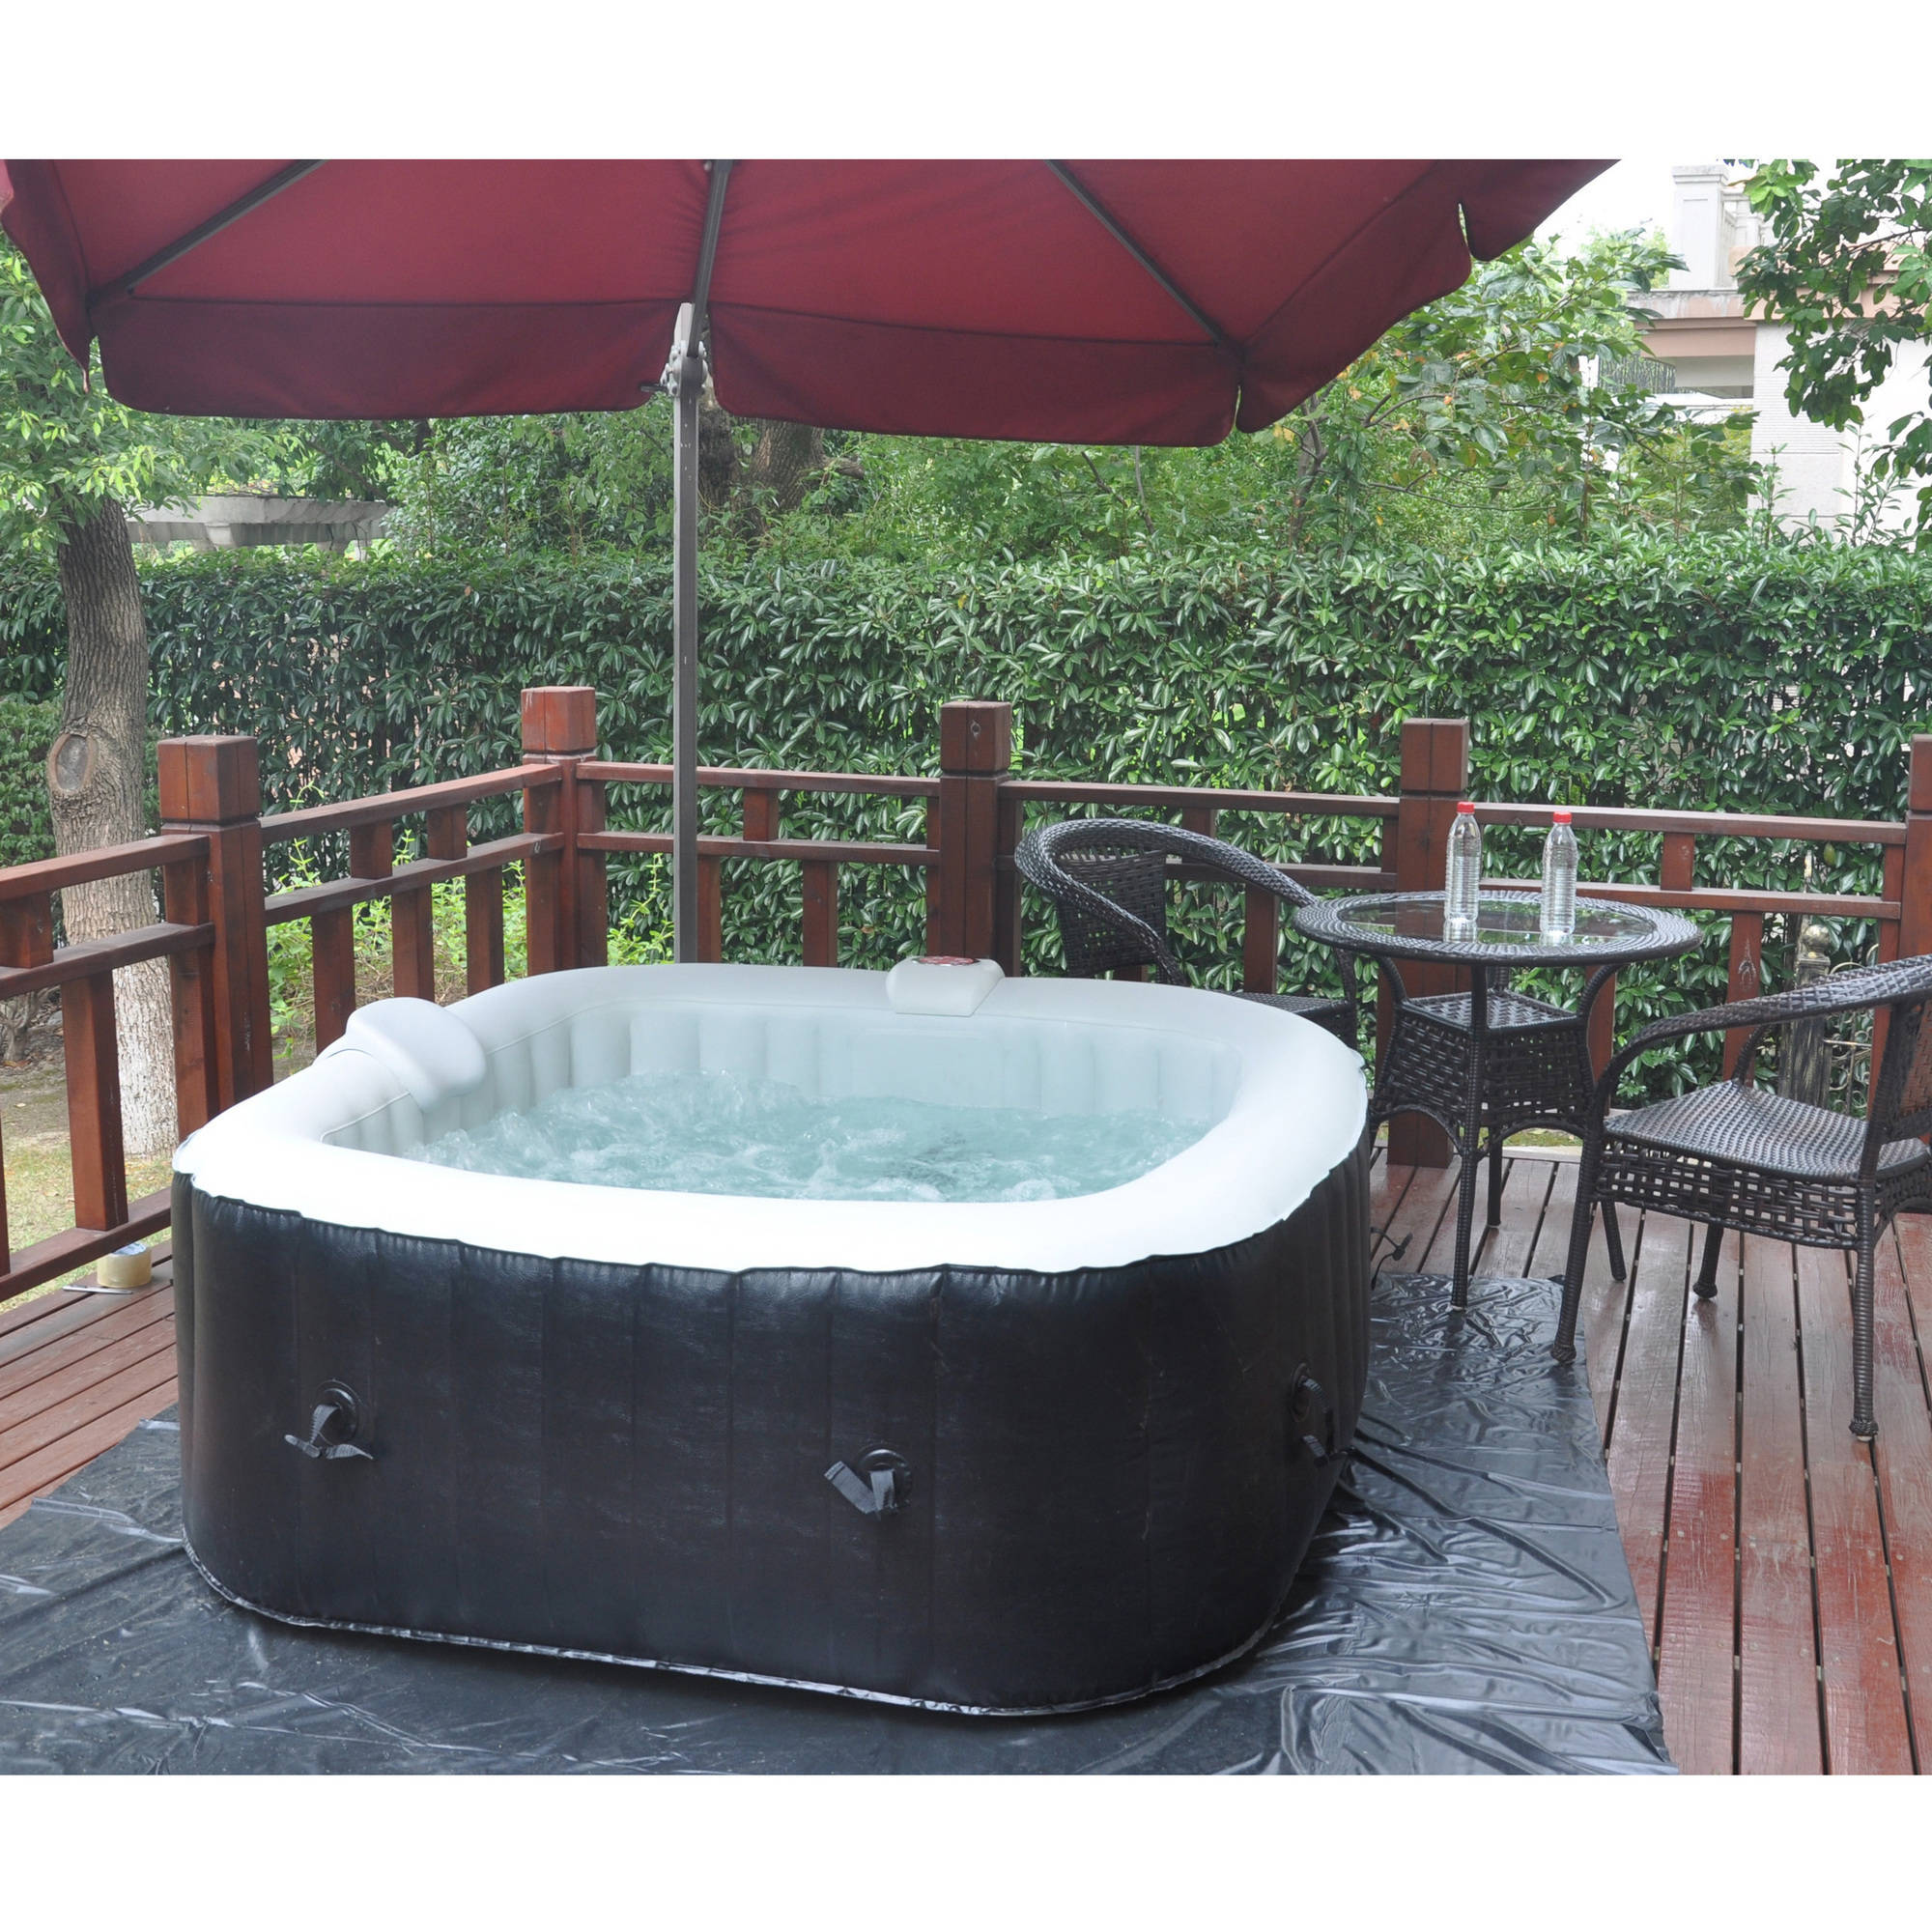 basement hot tub. Intex PureSpa 4 Person Inflatable All In One Bubble Massage Hot Tub And Pool - Walmart.com Basement